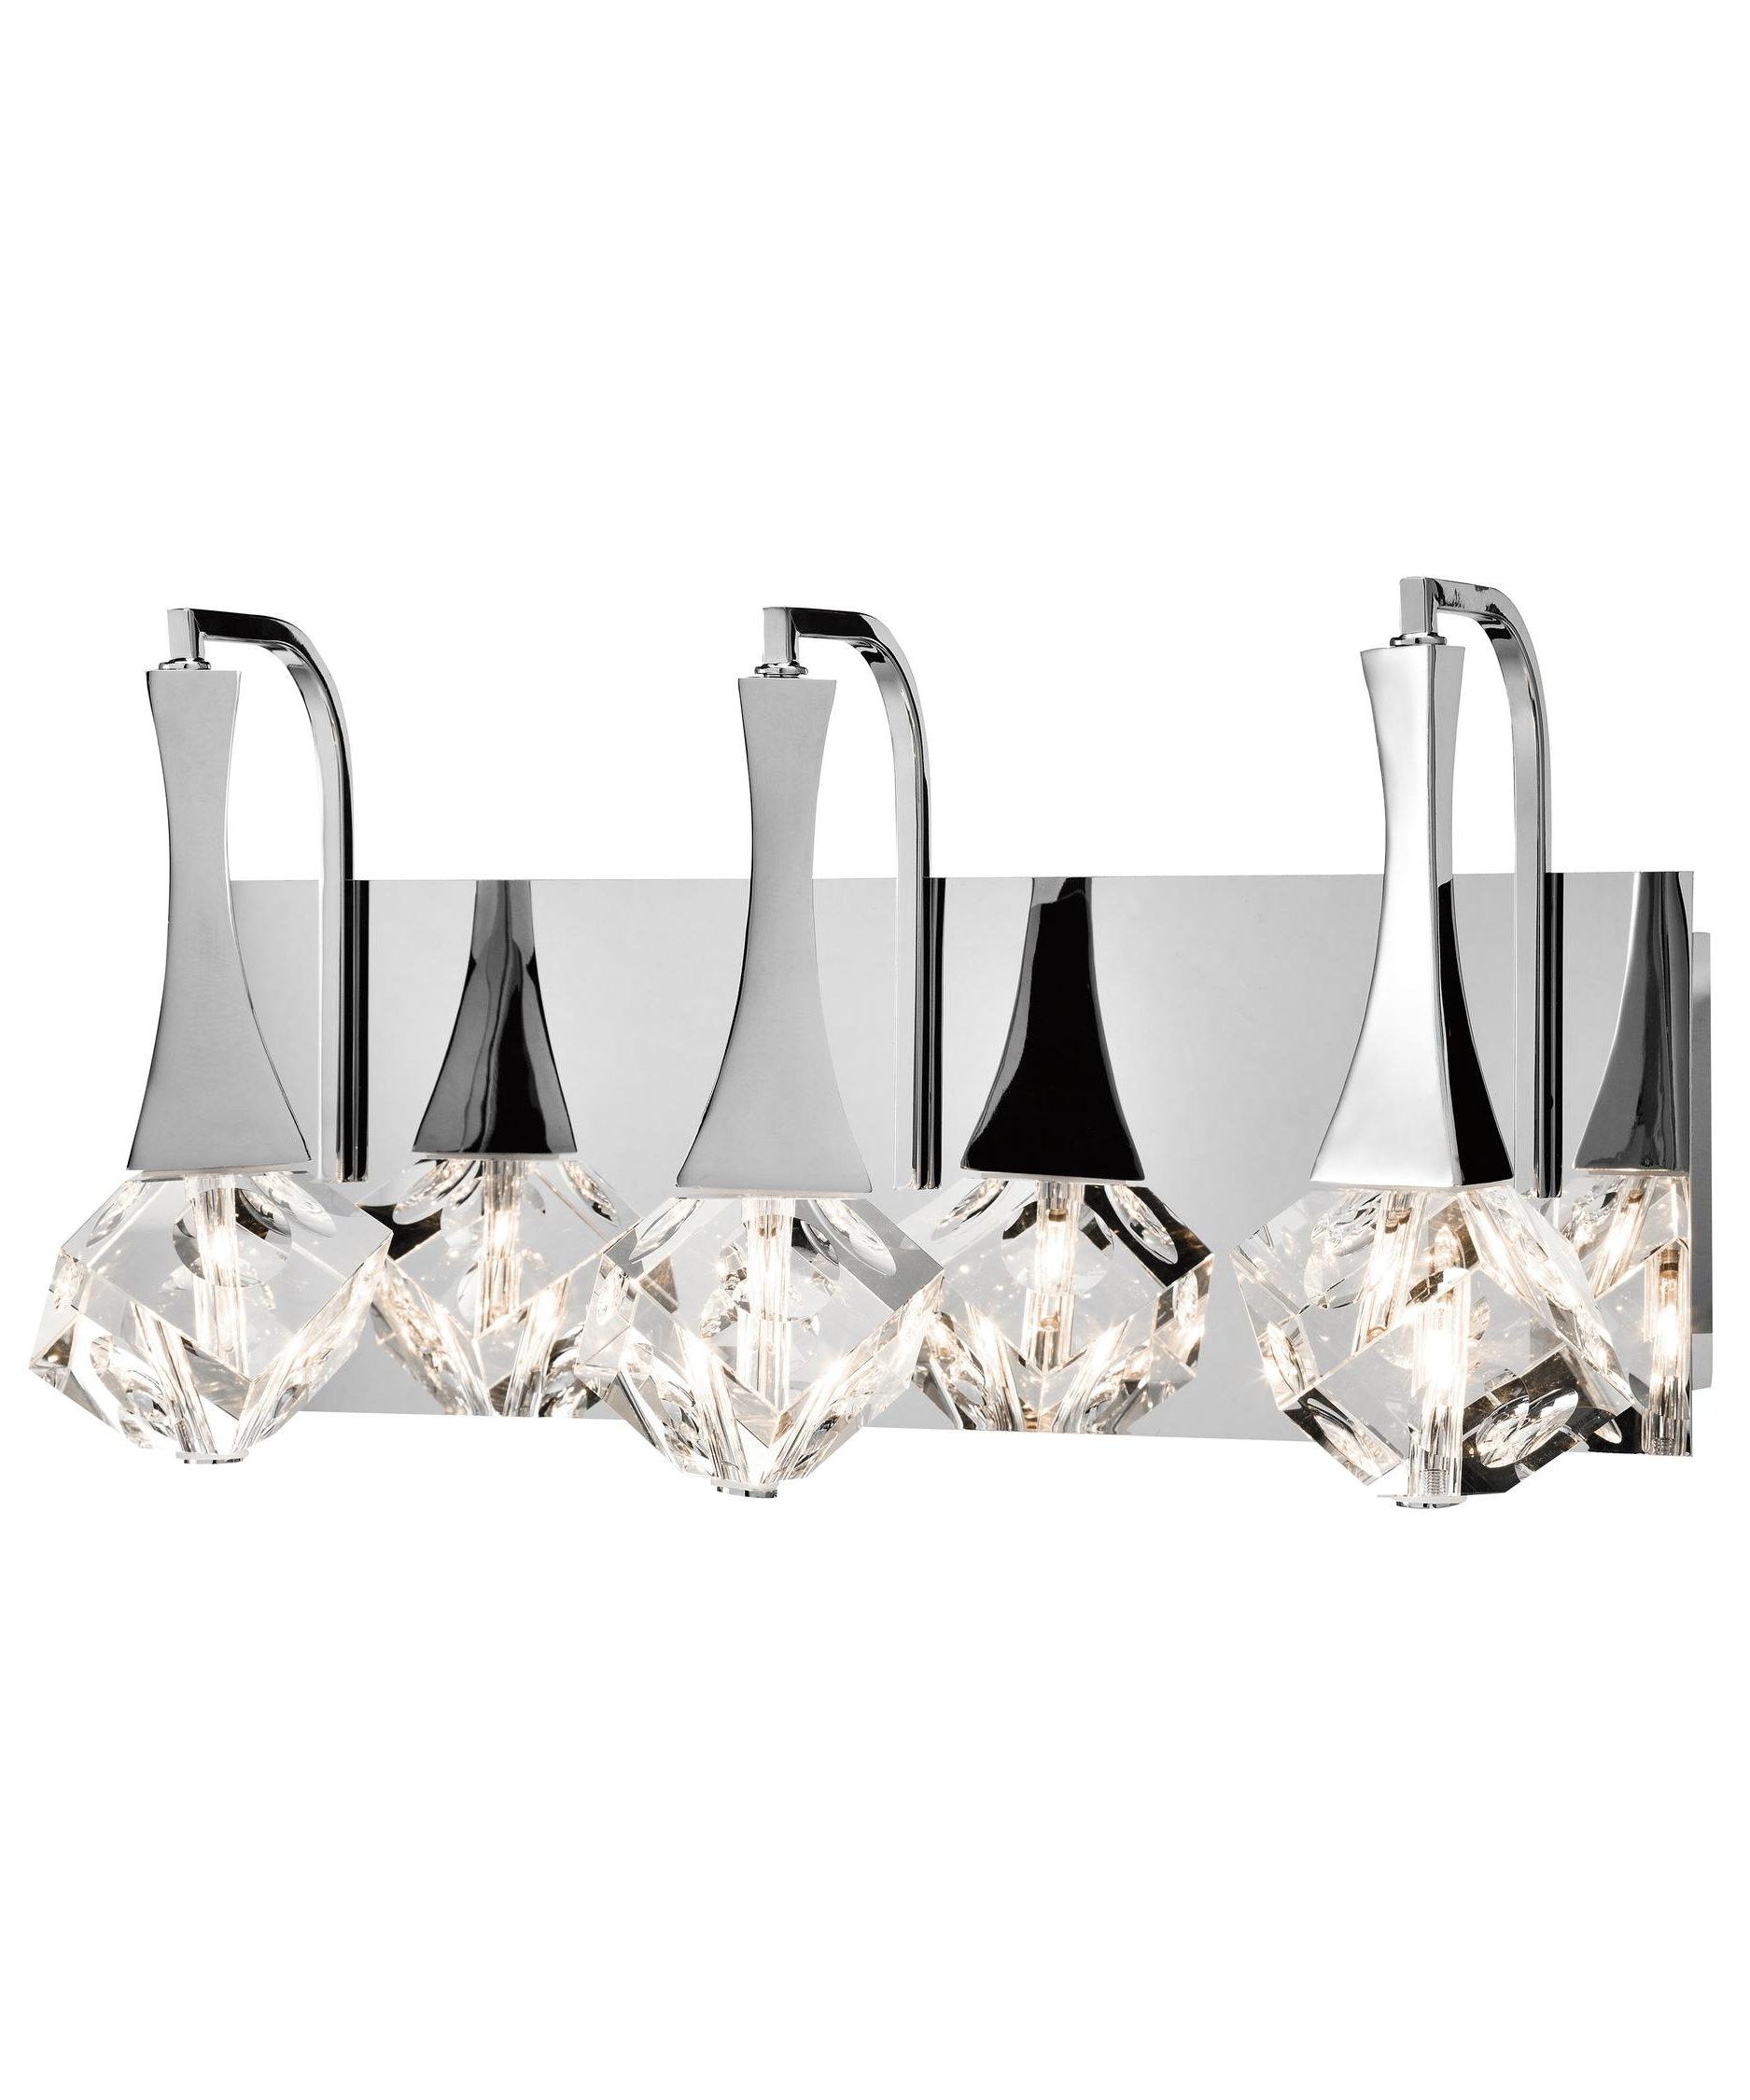 Crystal Bathroom Vanity Light Fixtures Lighting Swarovski Sconces With Well Liked Chandelier Bathroom Vanity Lighting (View 3 of 15)